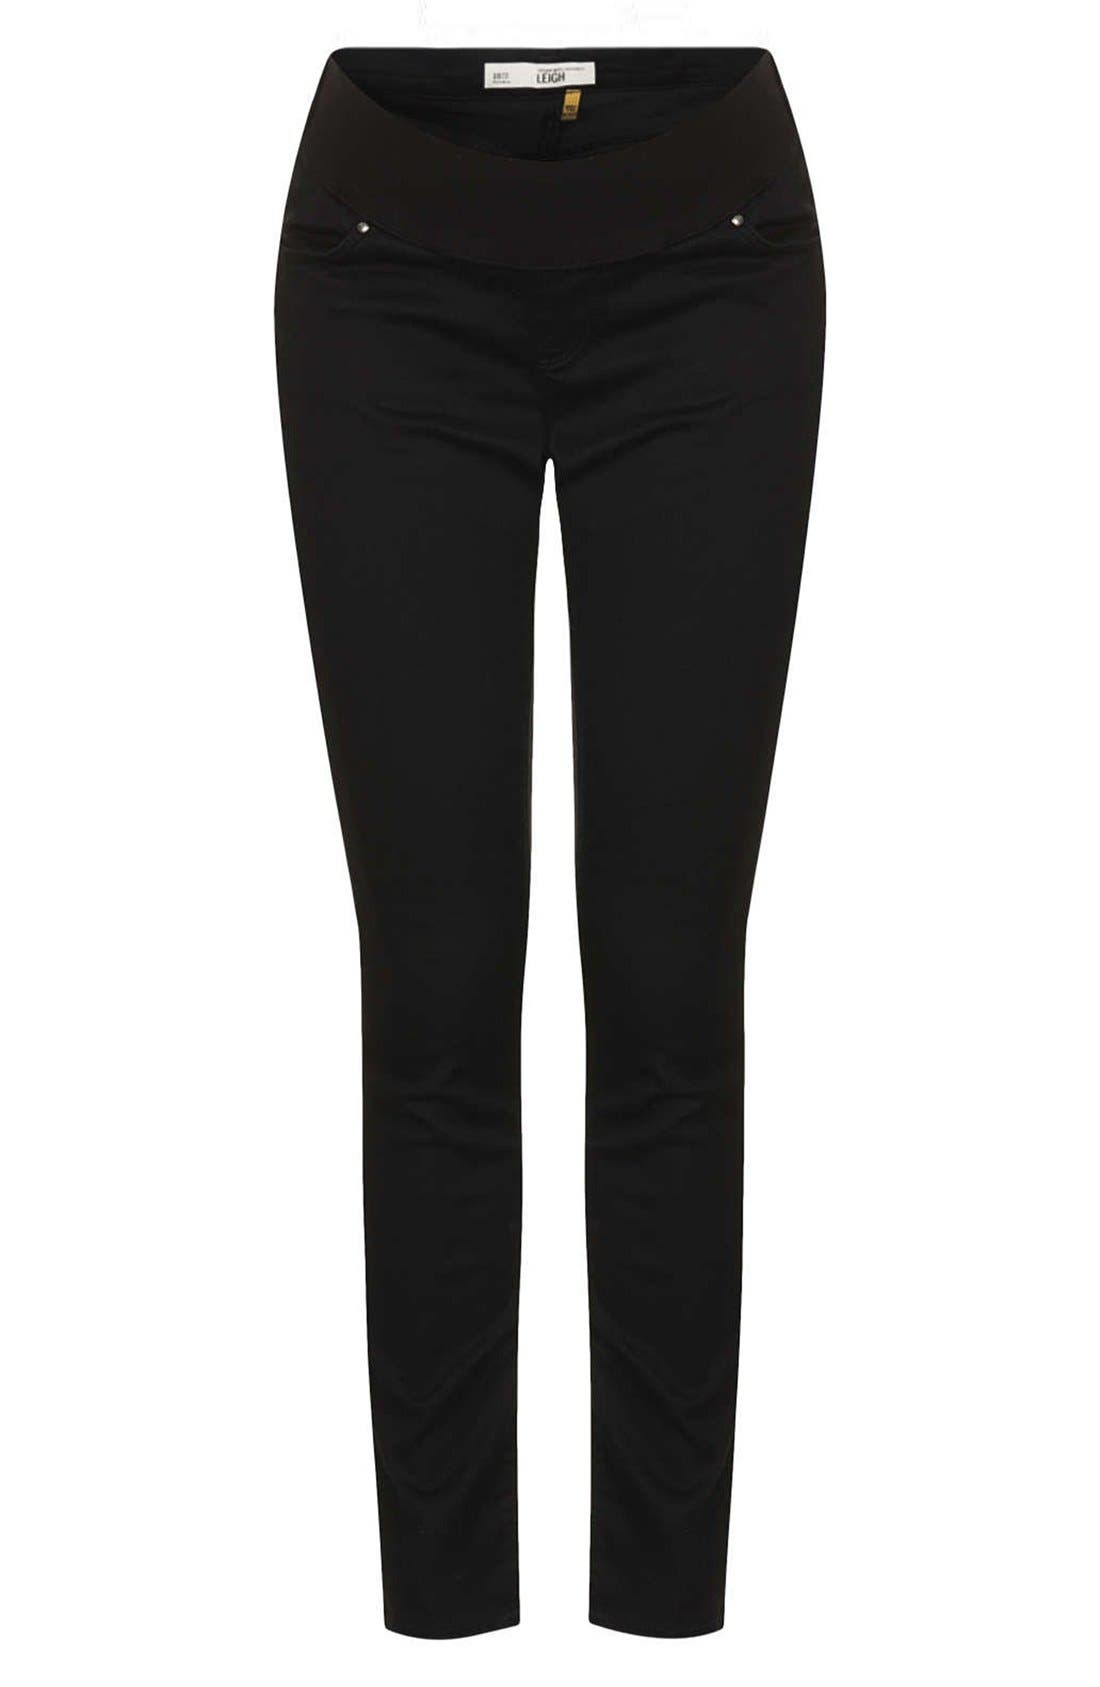 'Leigh' Maternity Jeans,                             Main thumbnail 1, color,                             001